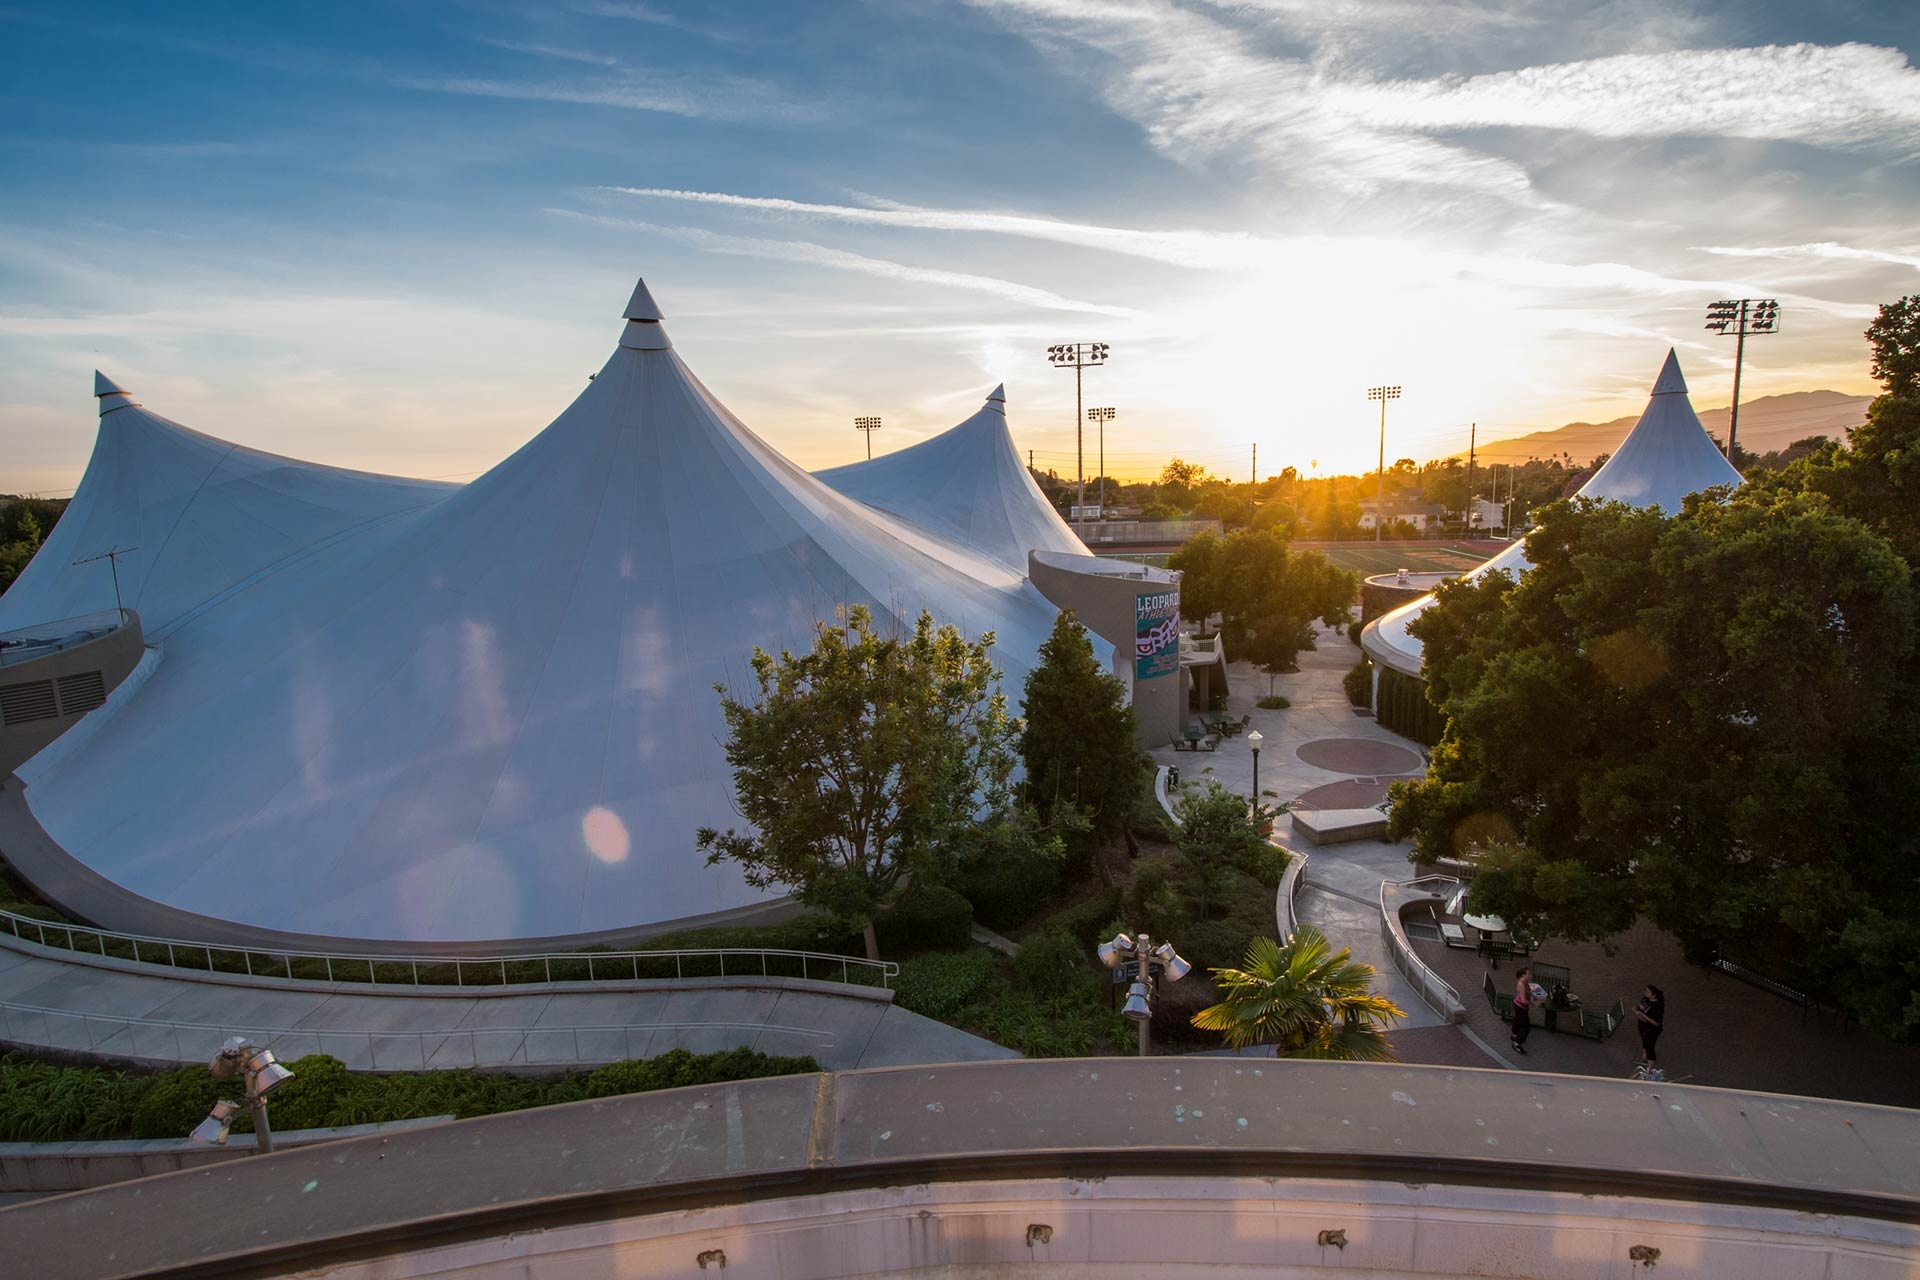 University of La Verne Athletic Pavilion - the Tents